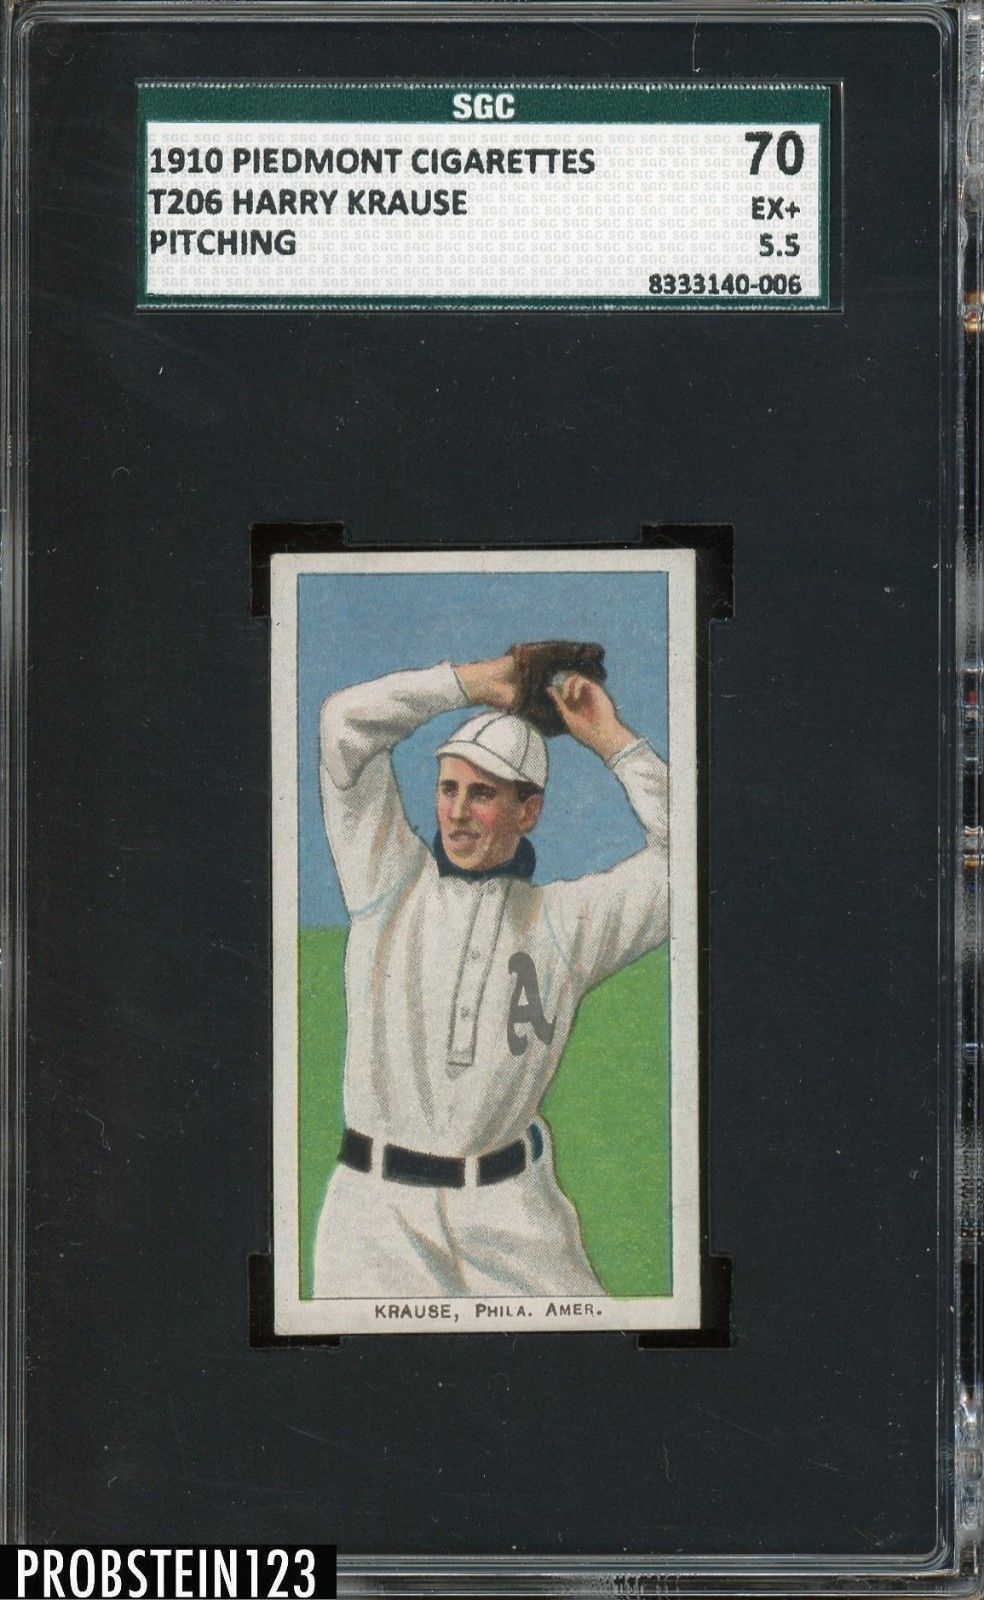 T206 Harry Krause Pitching Piedmont 350 Subjects SGC 70